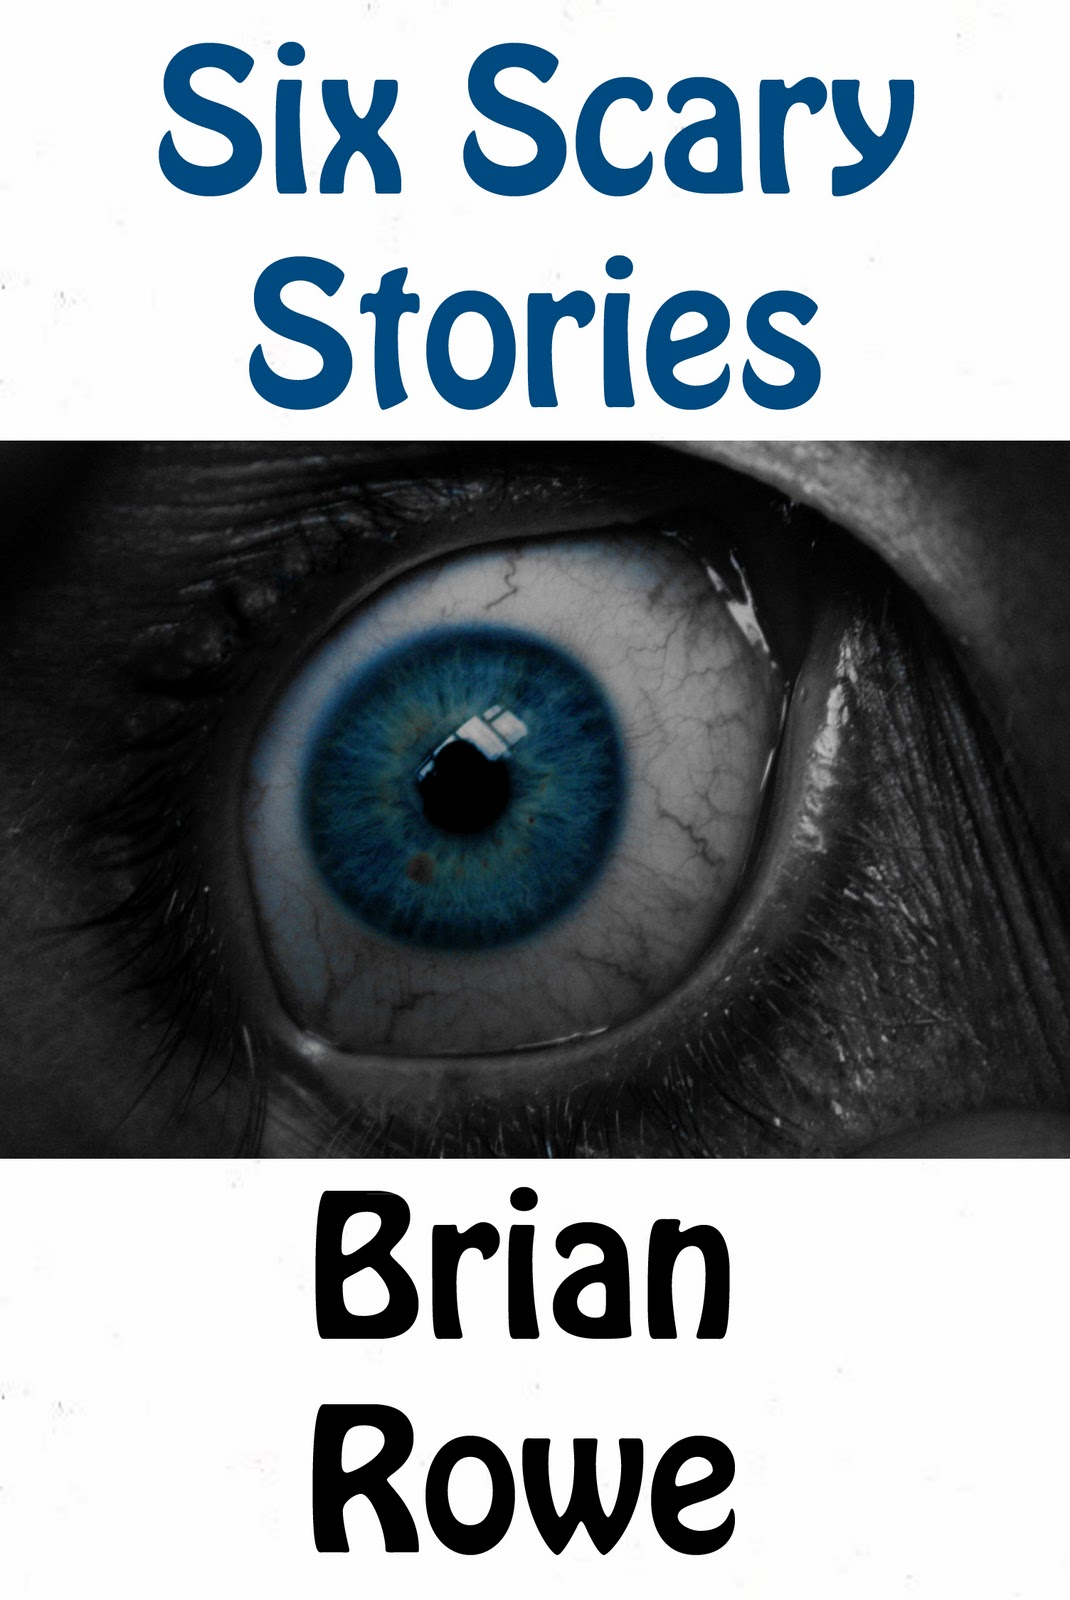 Six scary stories features six of my short horror stories